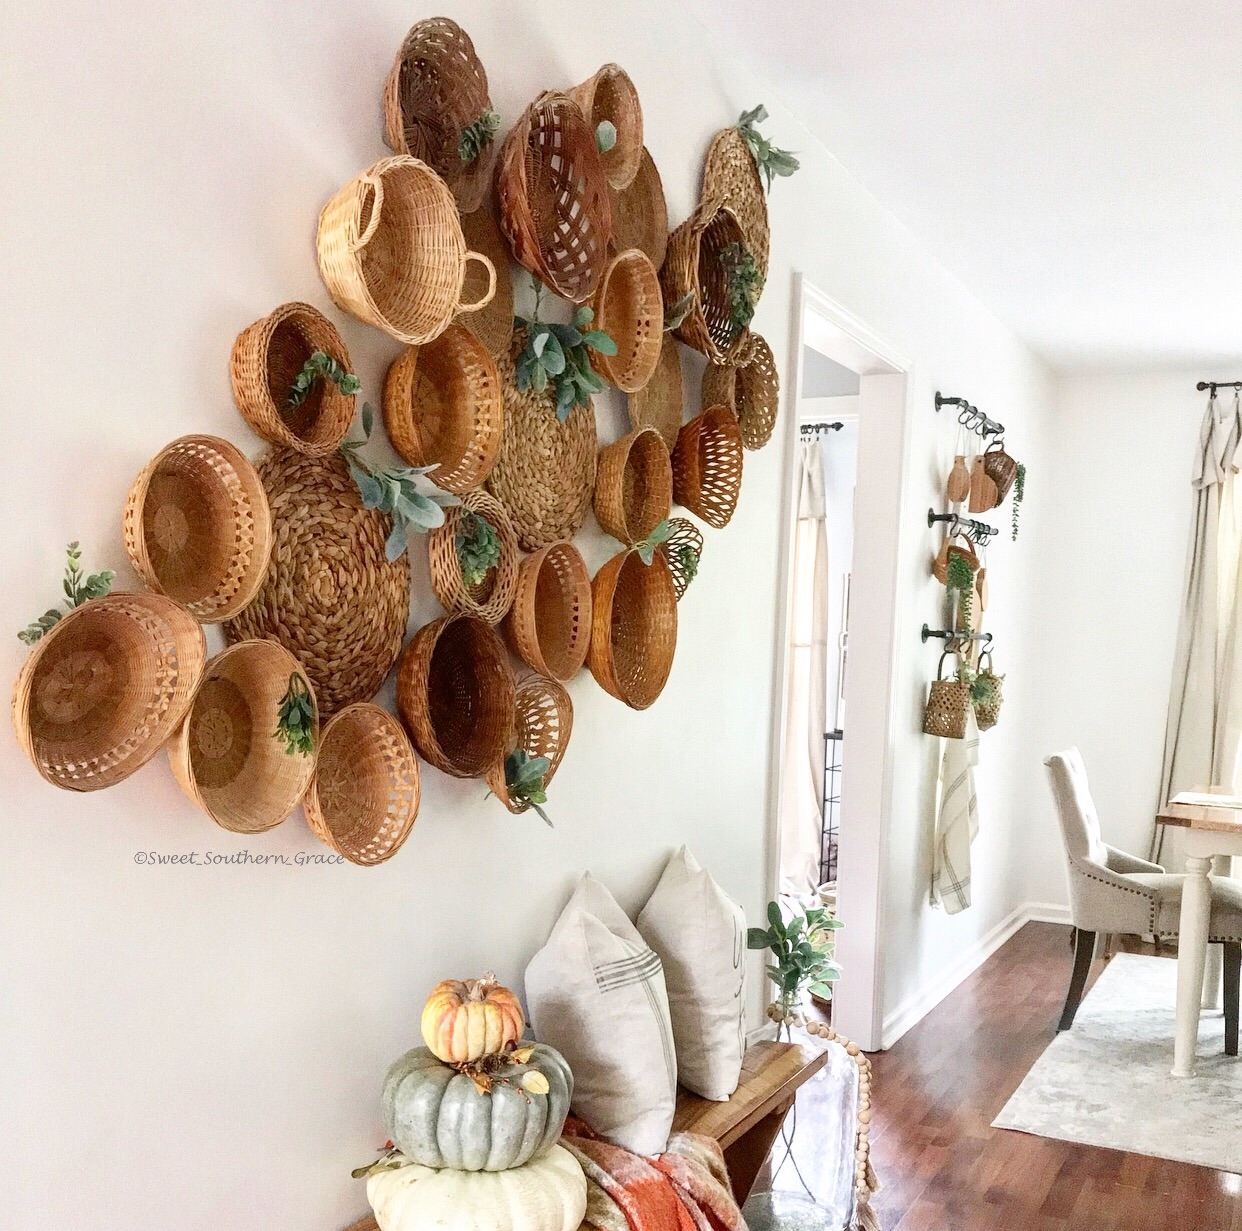 Love this farmhouse style basket gallery wall with plants #gallerywall #basketwall #basketgallerywall #farmhousestyle #farmhousedecor #eclecticdecor #diyart #thrifteddecor #thrifted #thriftedhome #neutraldecor